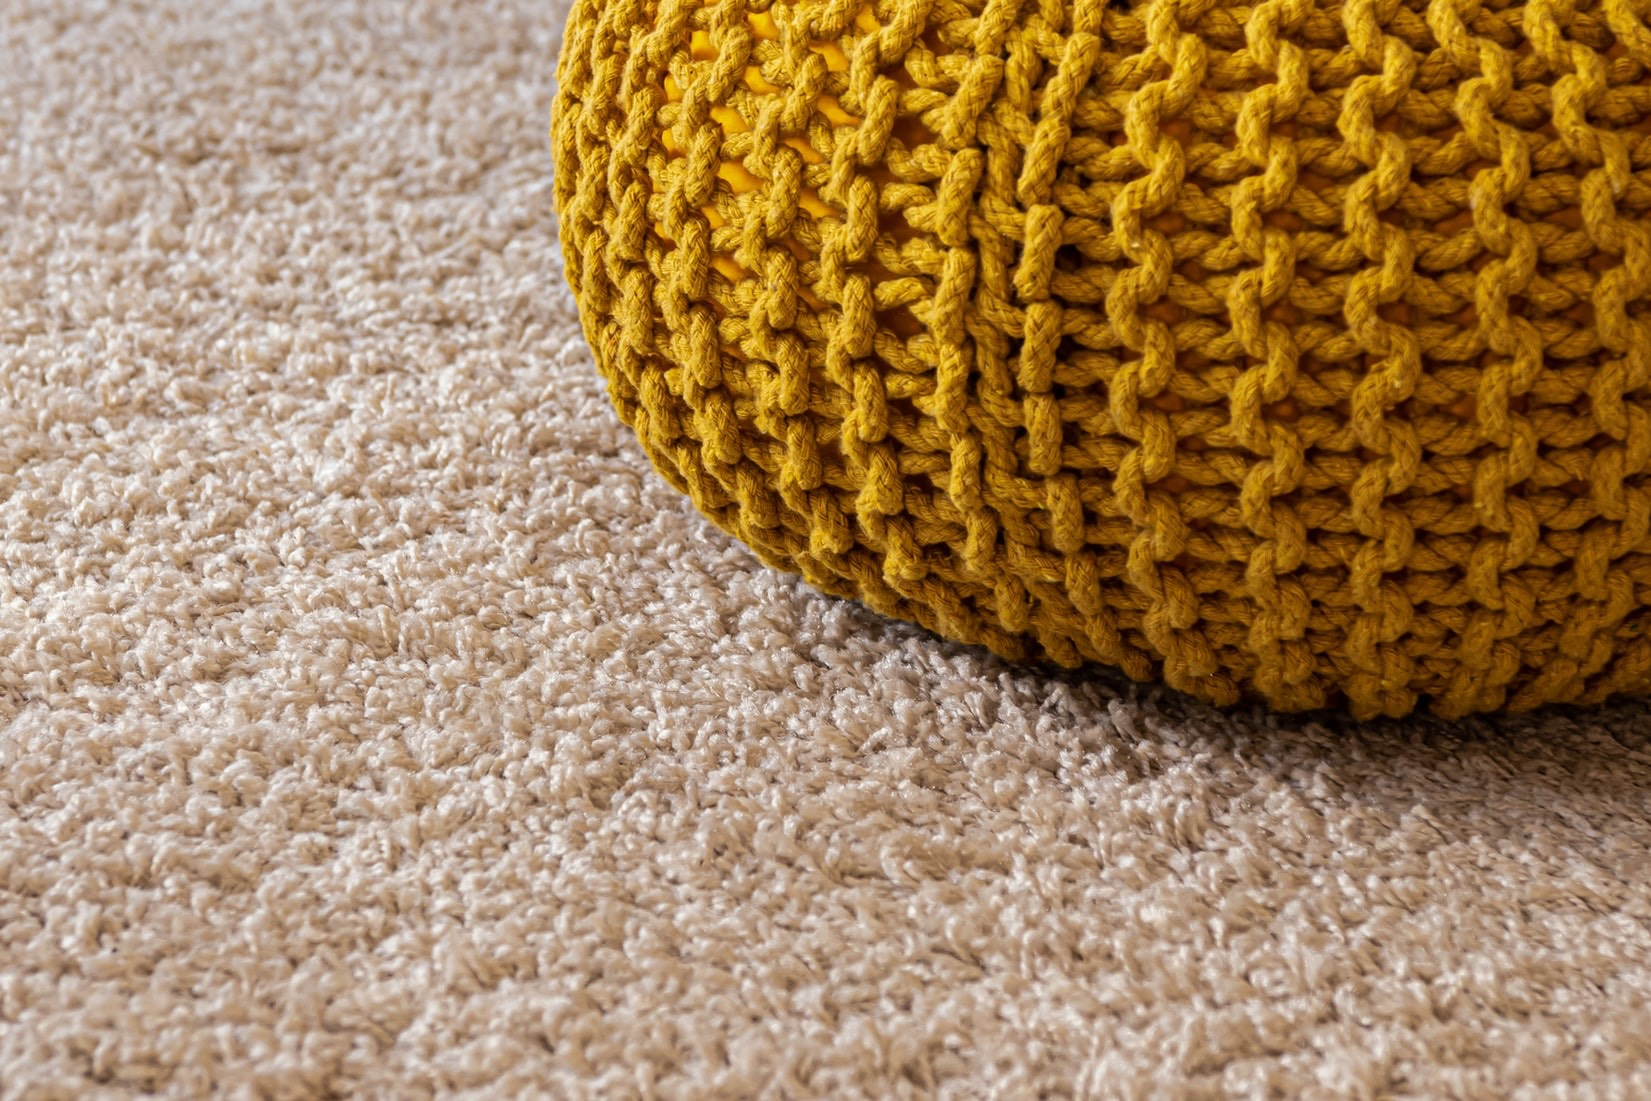 Image of How To Clean a Carpet or Rug: 6 Super-Easy Carpet Cleaning Hacks